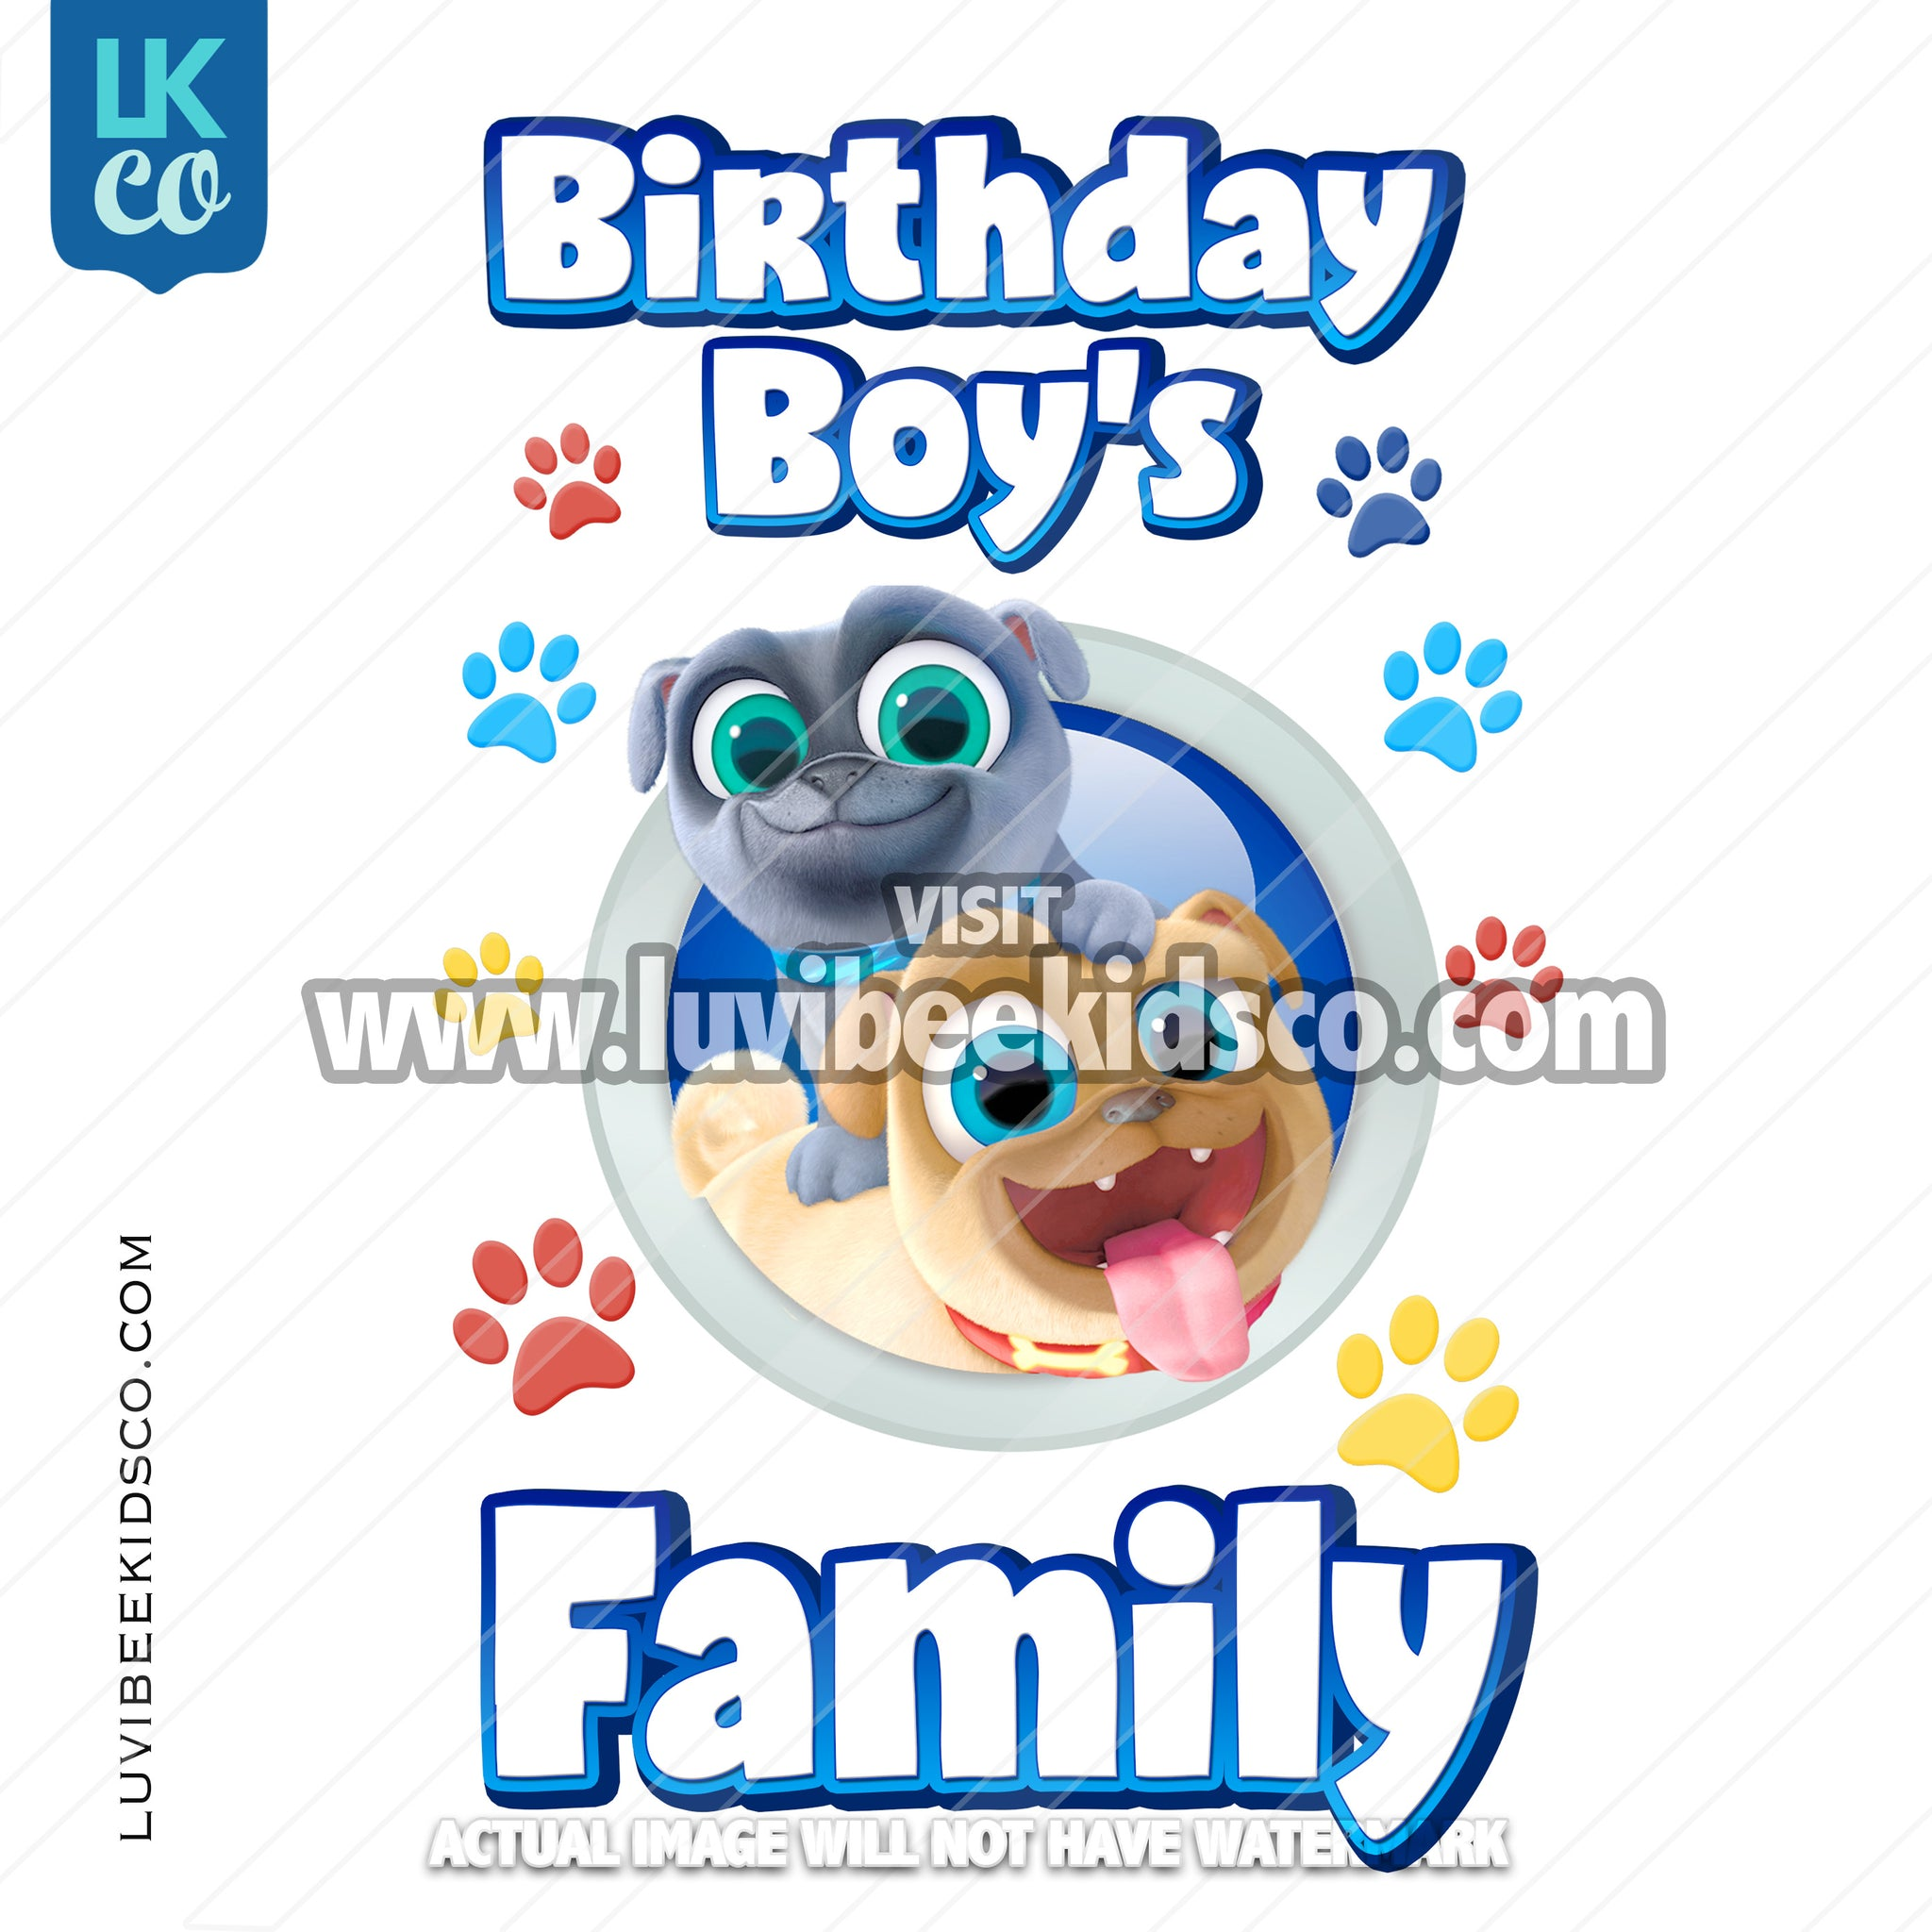 Puppy Dog Pals Iron On Transfer | Add Family Members - Style 2 - Boy or Girl